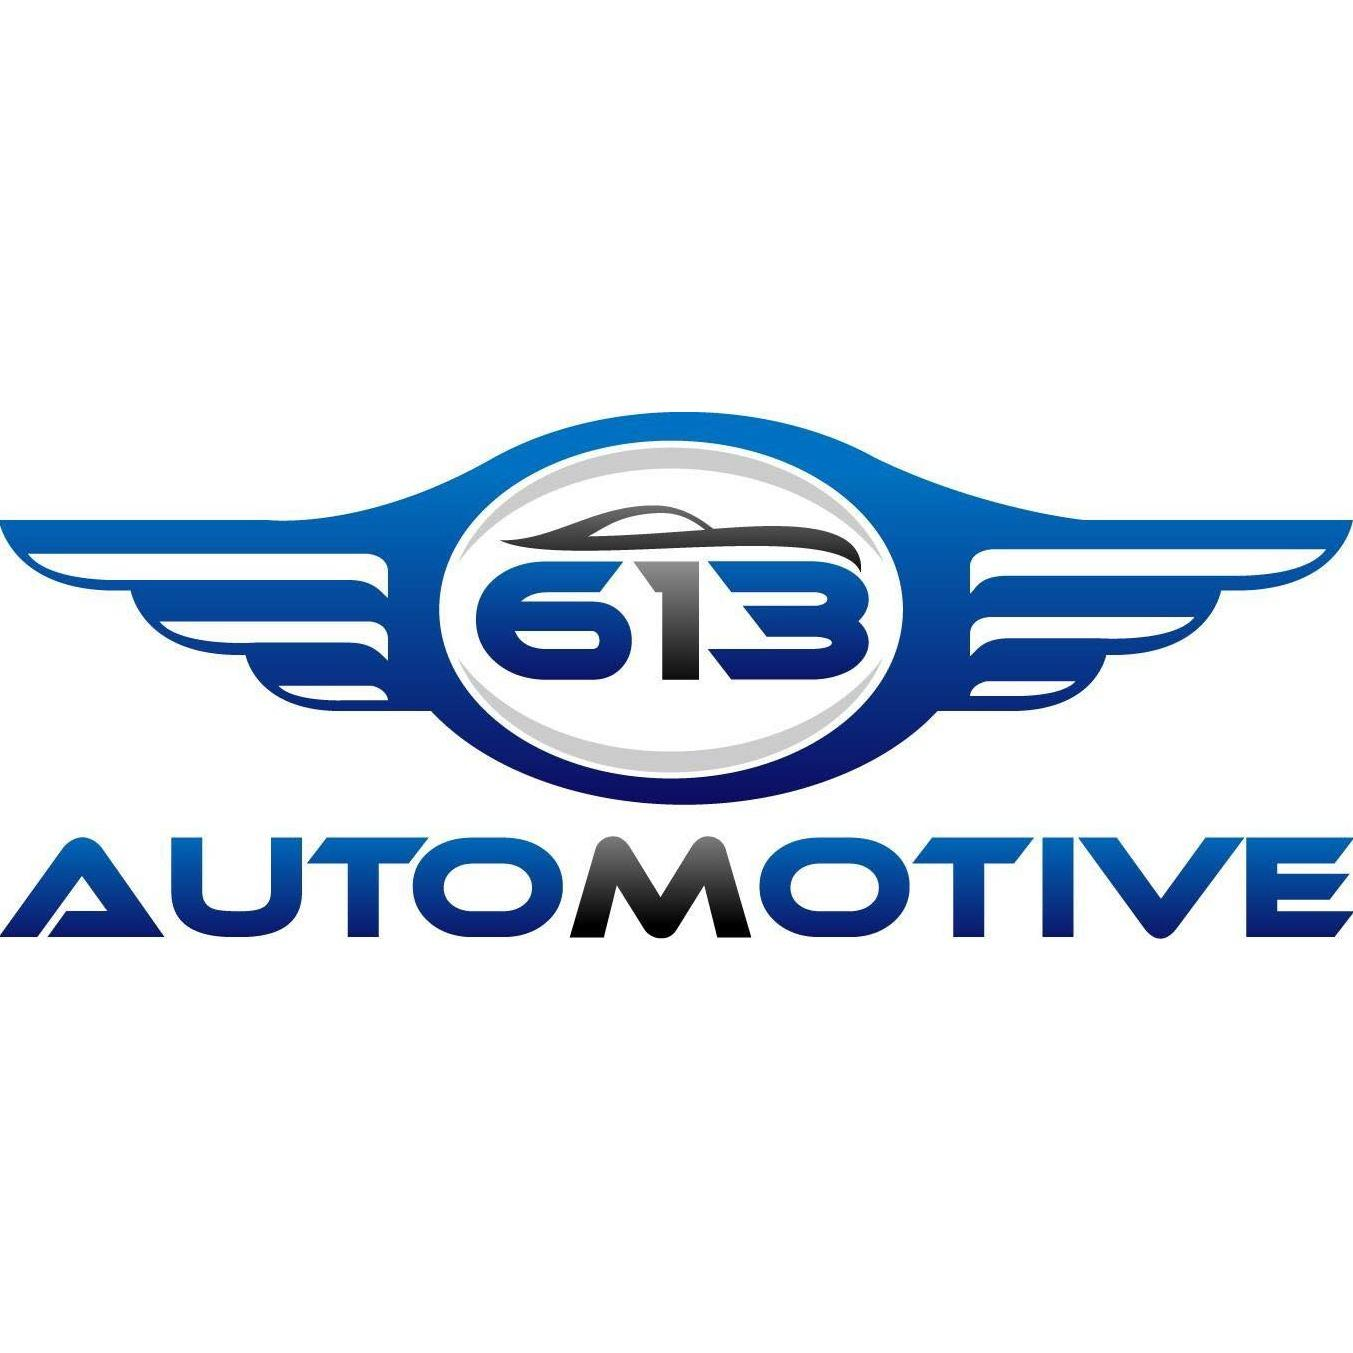 613 Automotive Group - Ellenville, NY - Auto Dealers